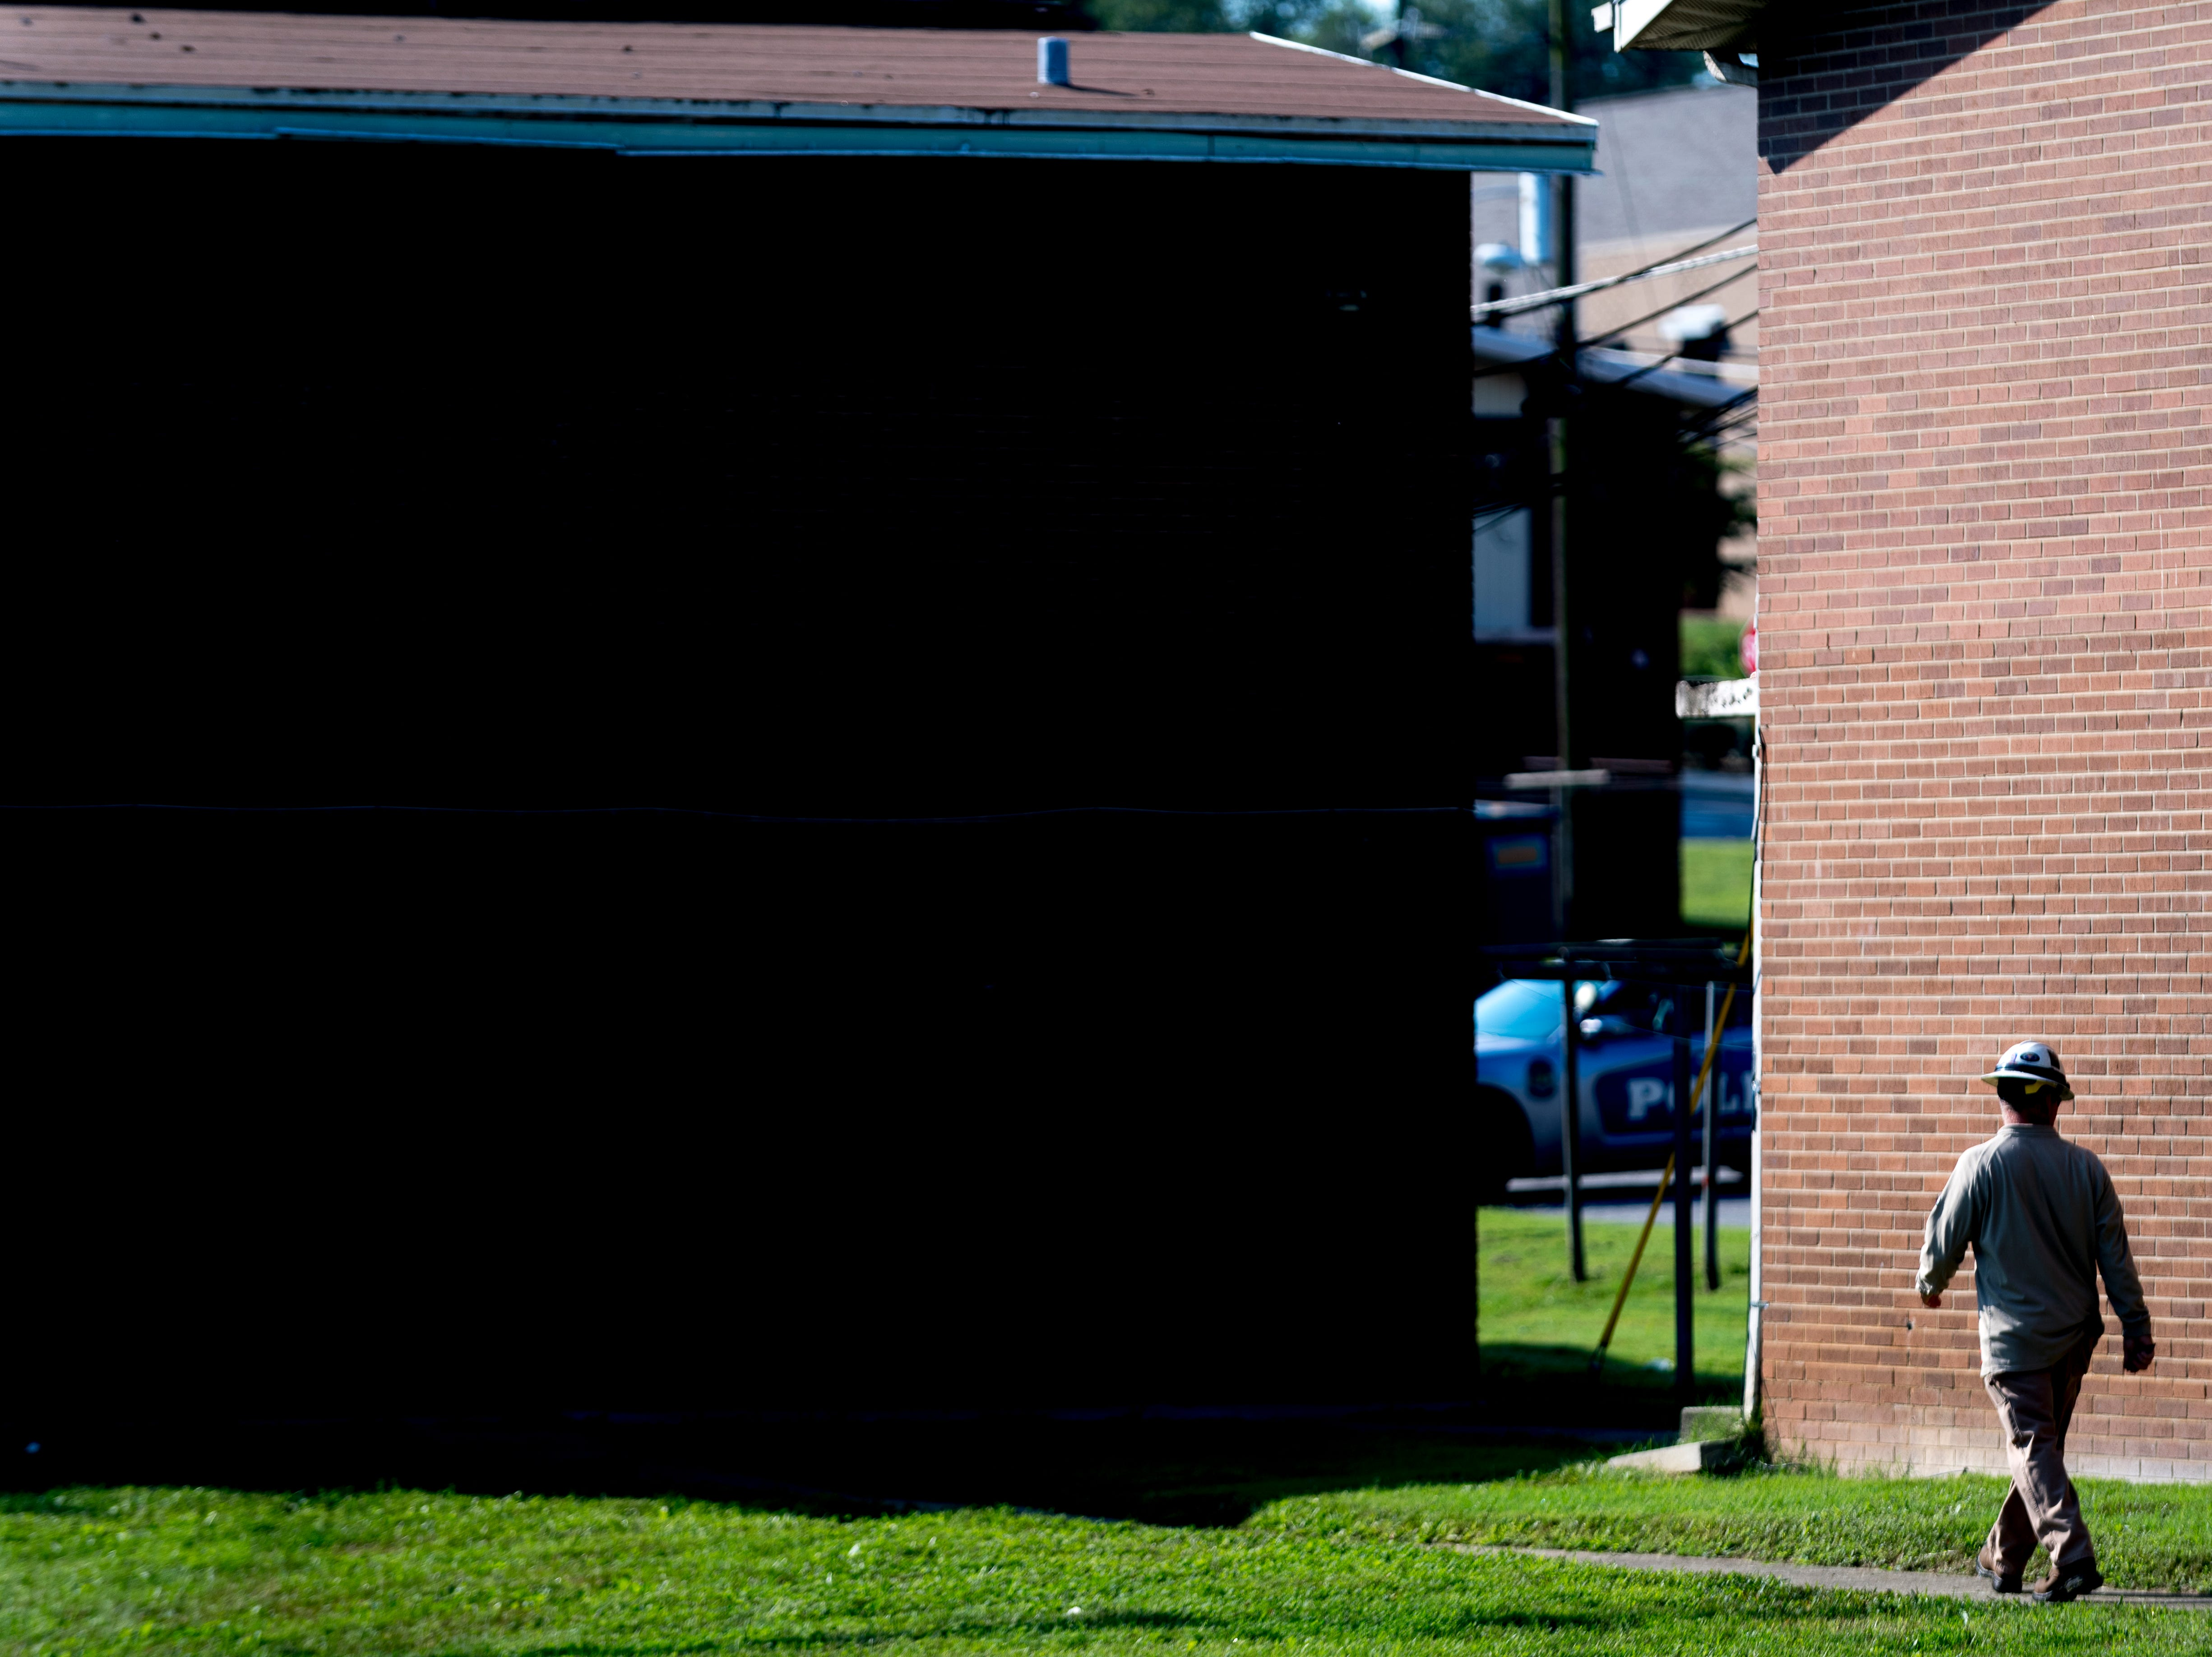 A man walks through Walter P. Taylor Homes in Knoxville, Tennessee on Wednesday, September 19, 2018. The 10-building, 84-unit affordable housing complex has been part of Mayor Rogero's focus on affordable housing.